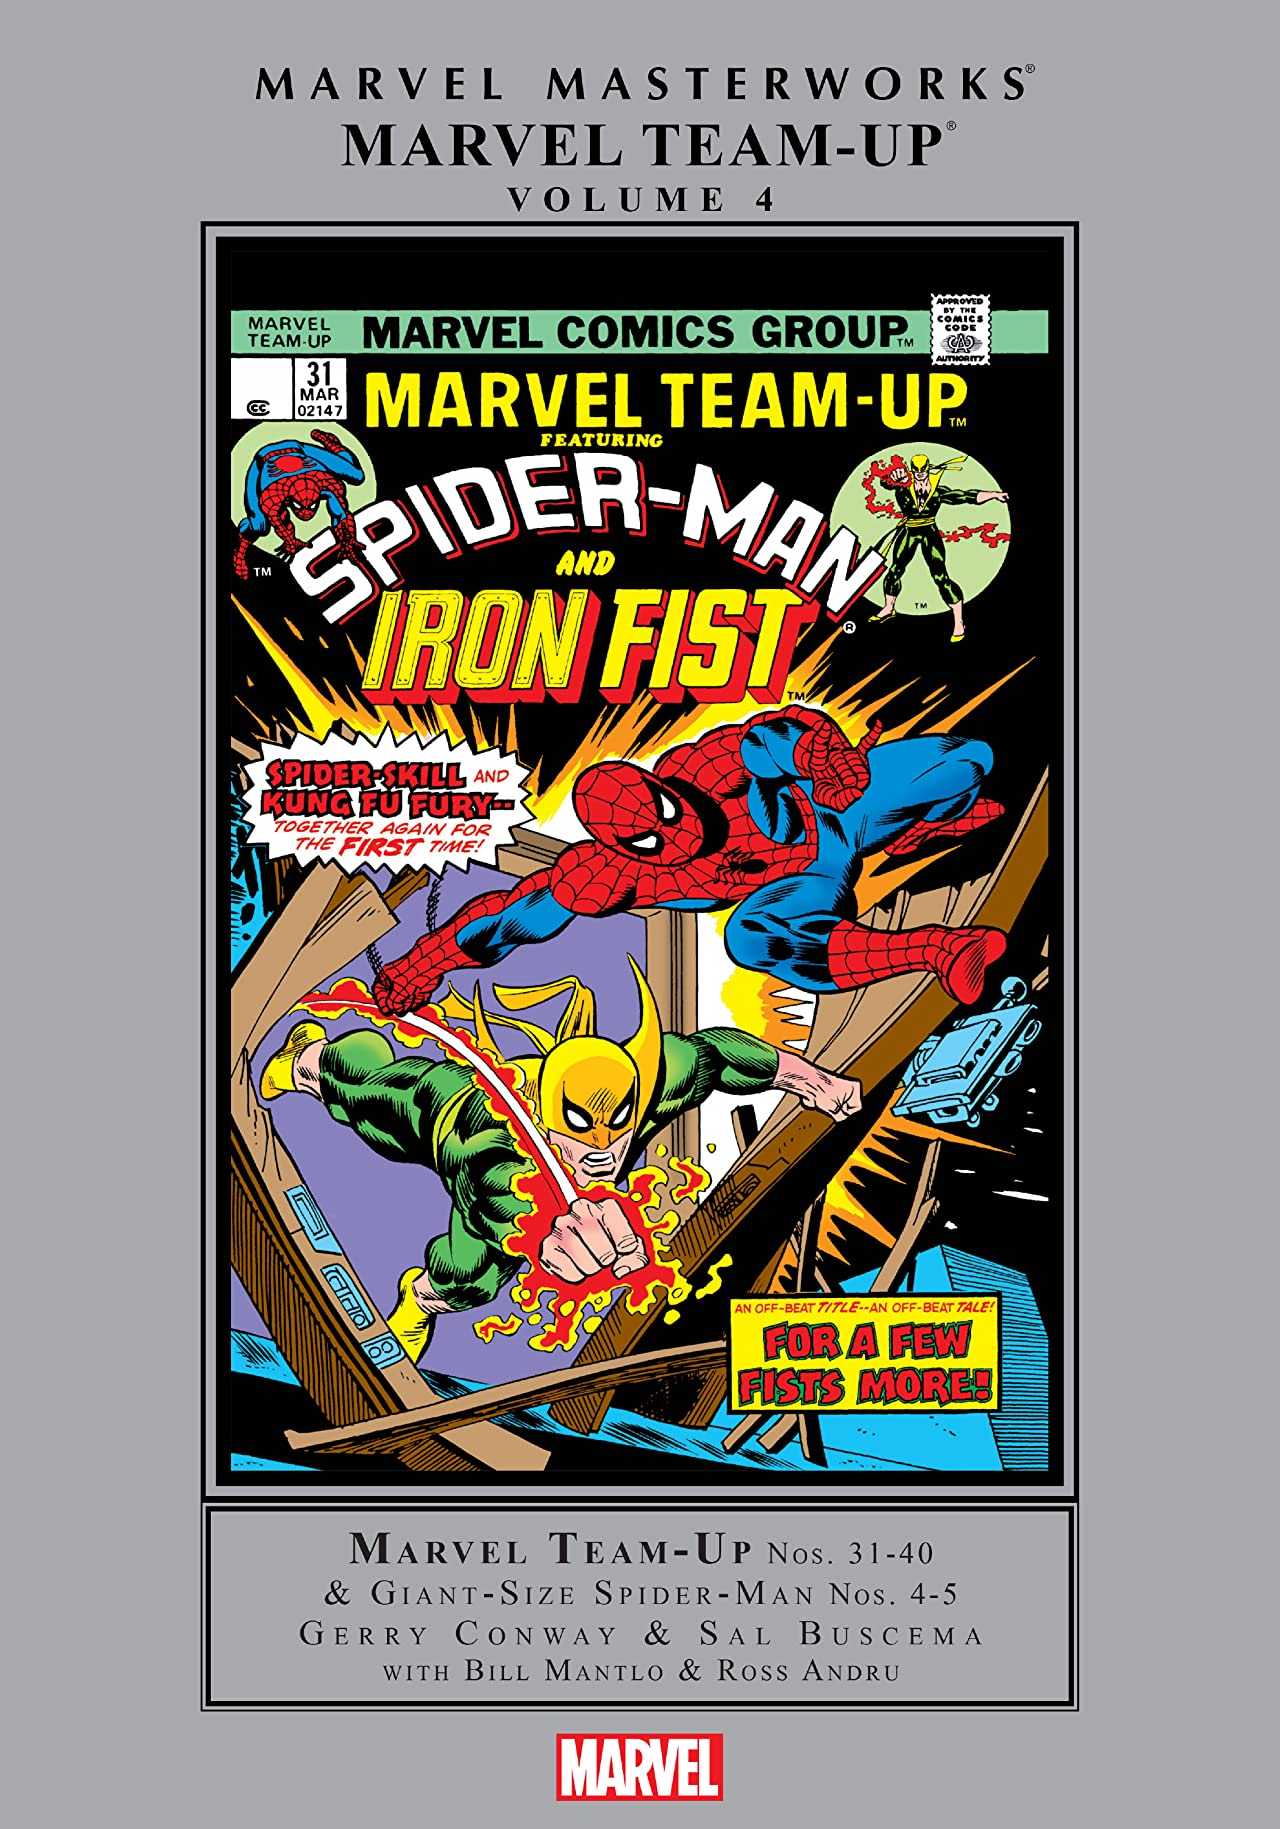 Marvel Team-Up Masterworks Vol. 4